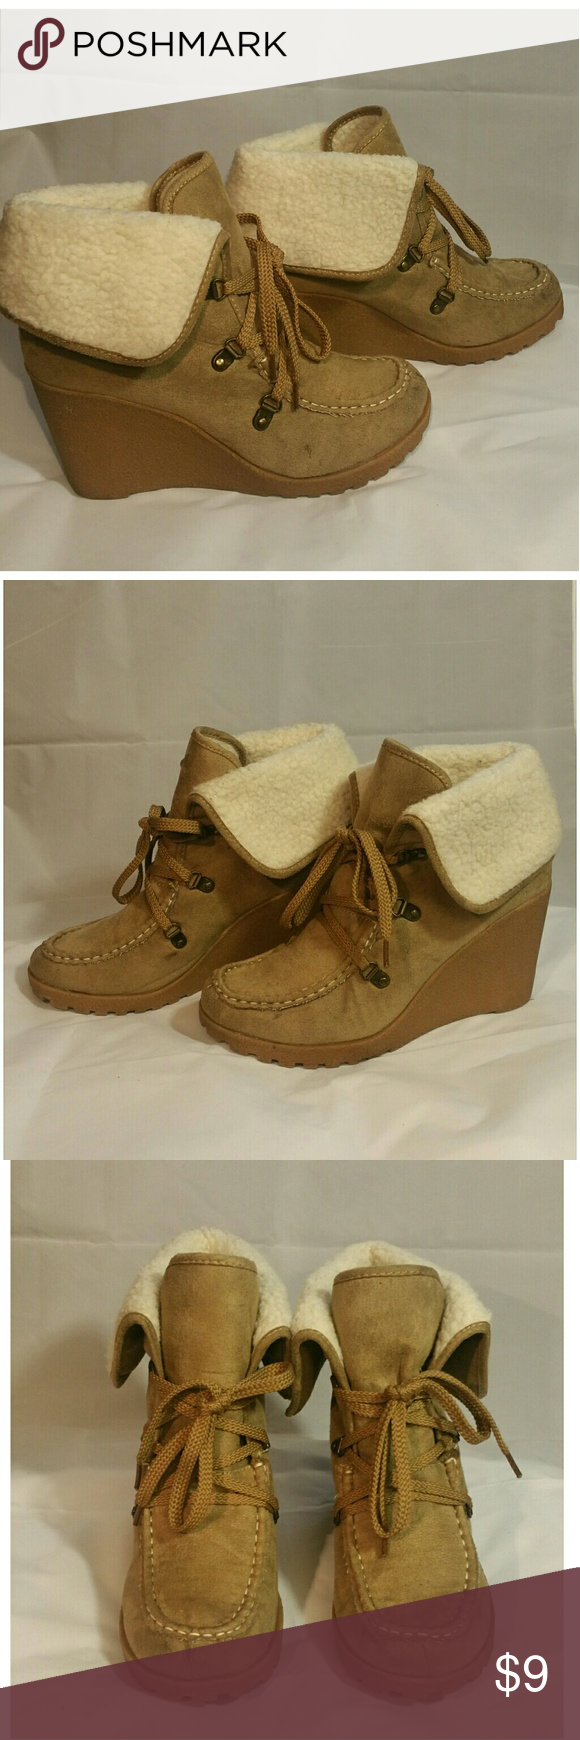 400a018b192a Unionbay Wedge Booties Preowned beige Unionbay wedge booties Size 9 1 2  UNIONBAY Shoes Ankle Boots   Booties